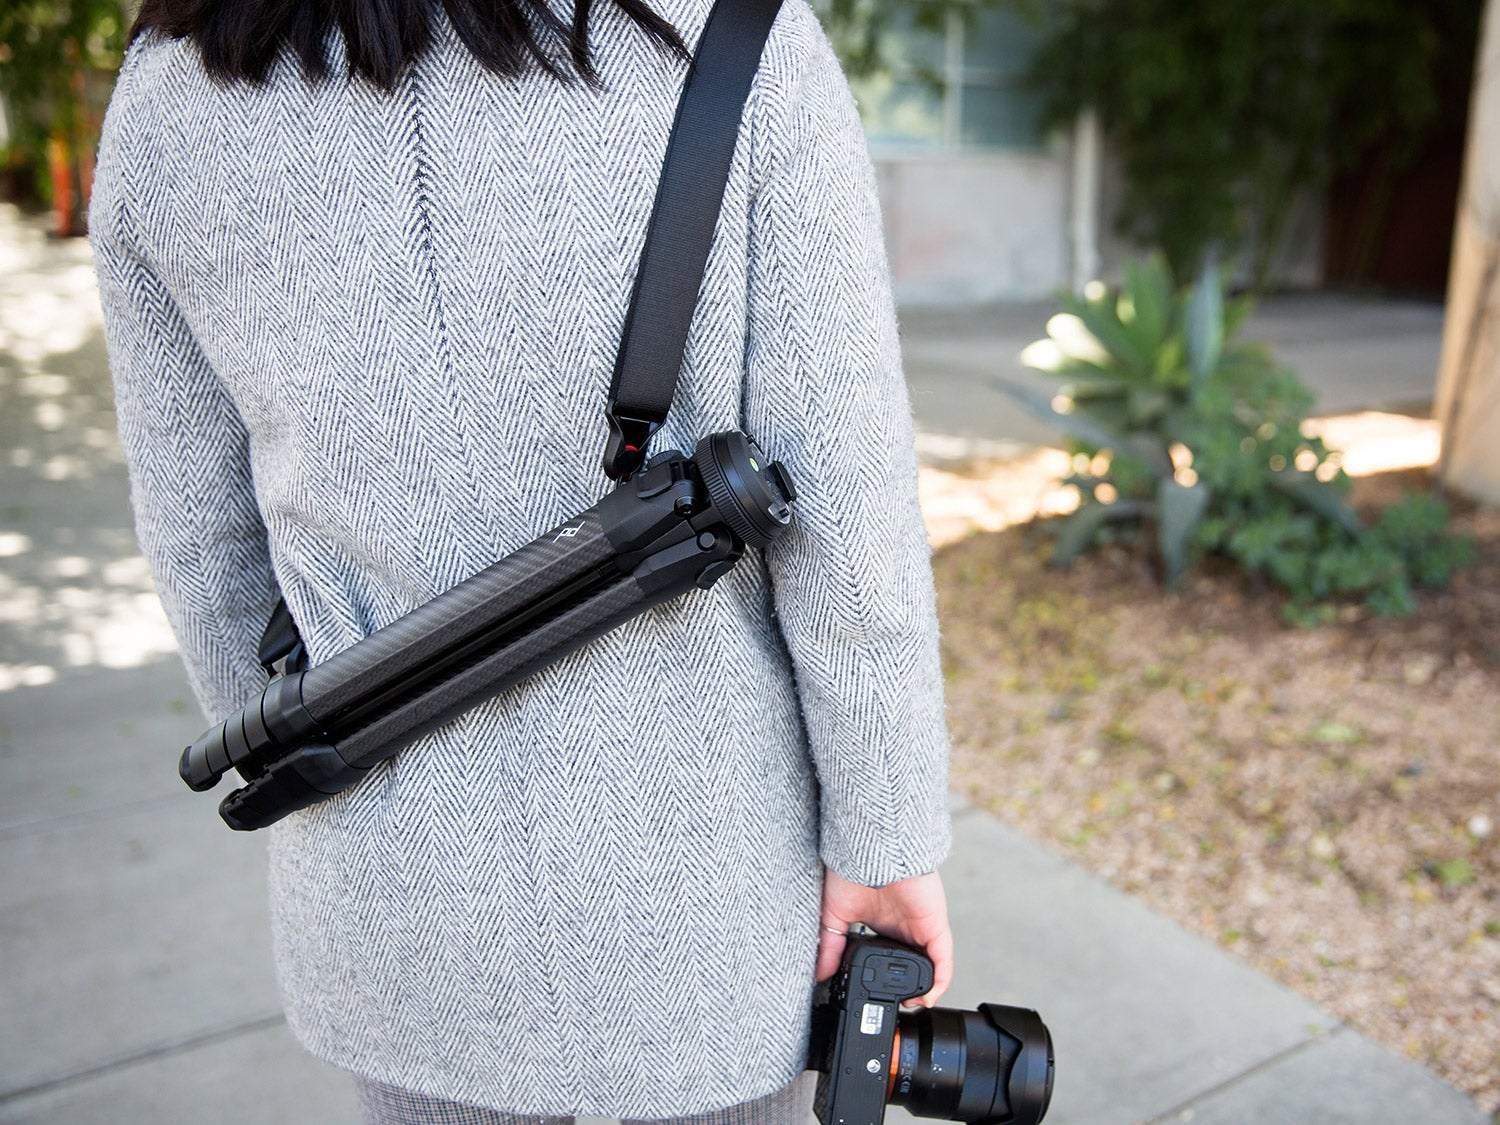 Peak Design is reimagining the travel tripod